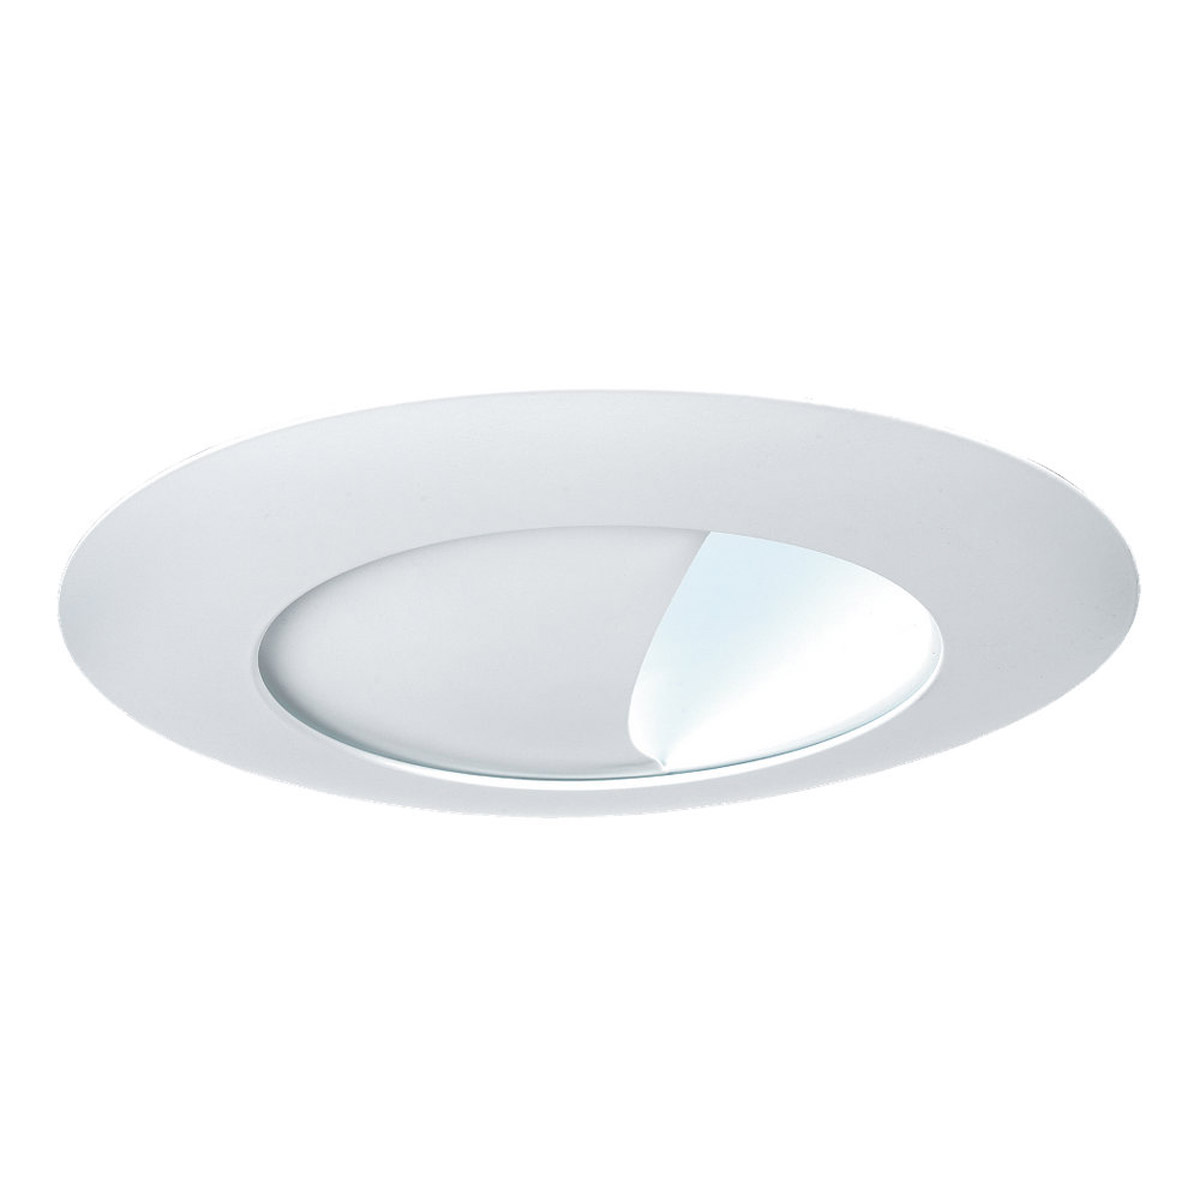 Sea Gull Lighting Signature Recessed Trim Only in White 11039AT-15